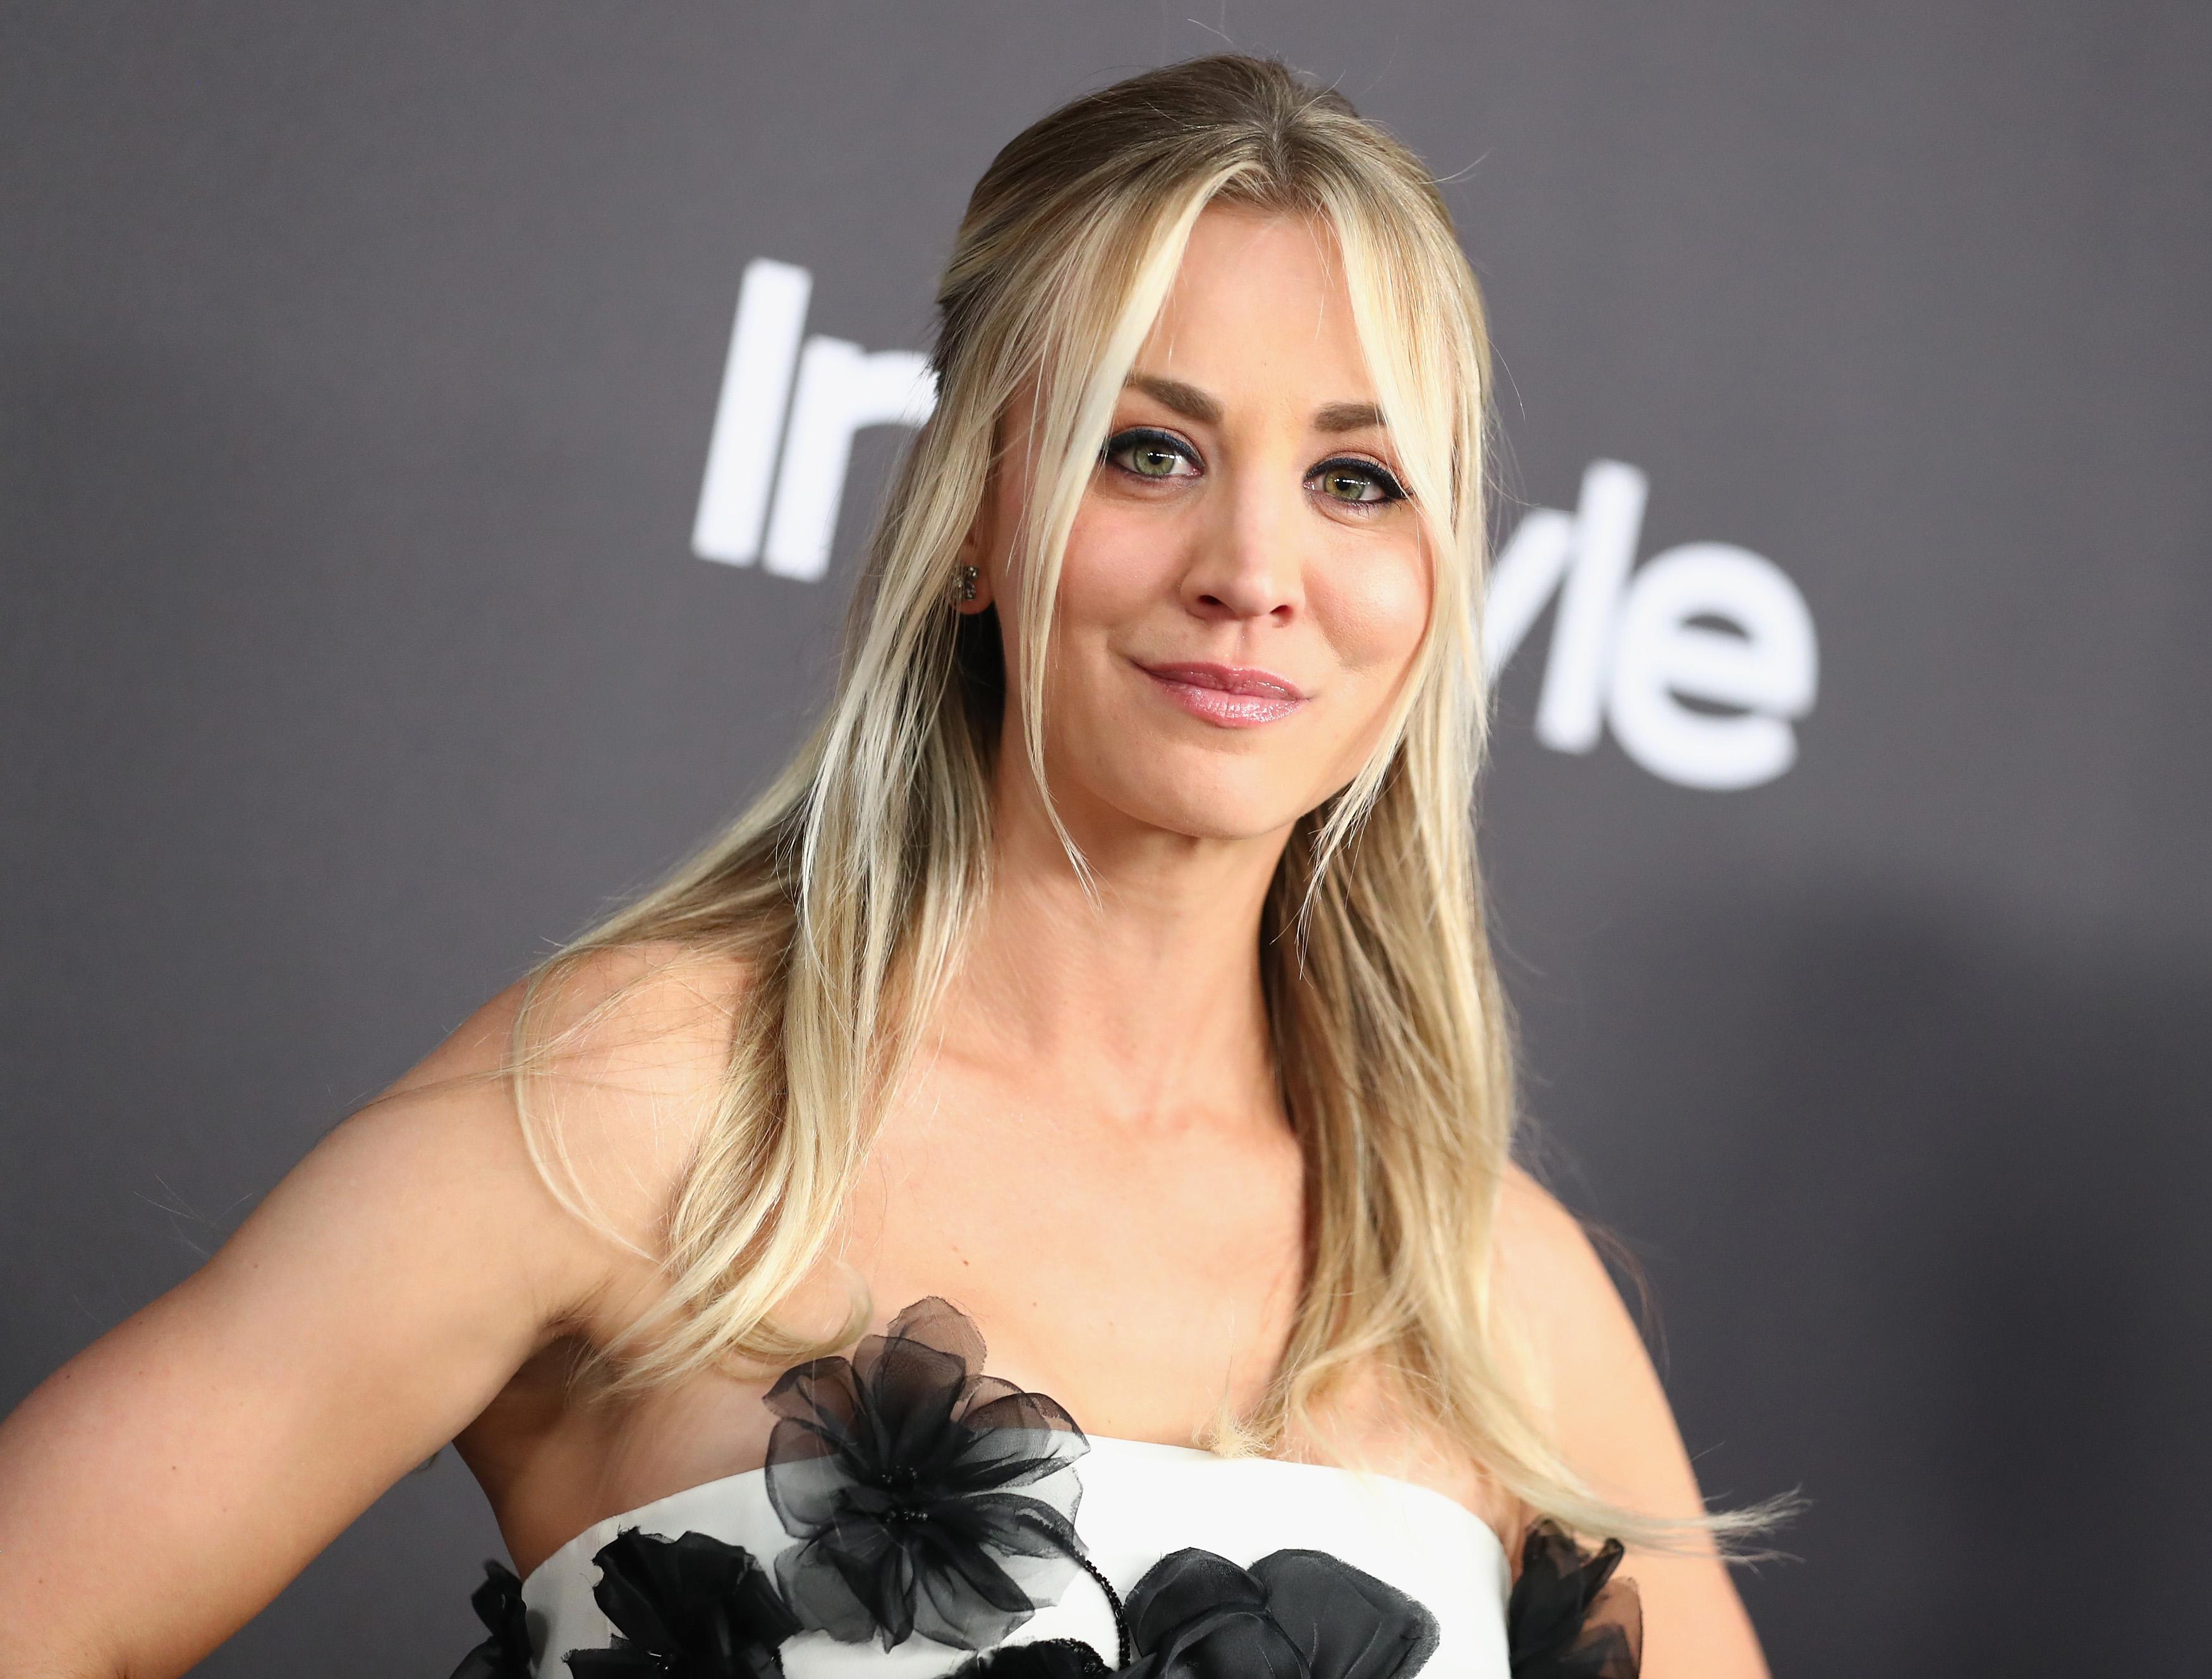 Kaley Cuoco shares beauty secret in airport bathroom: 'I'm never going to leave home without this thing'